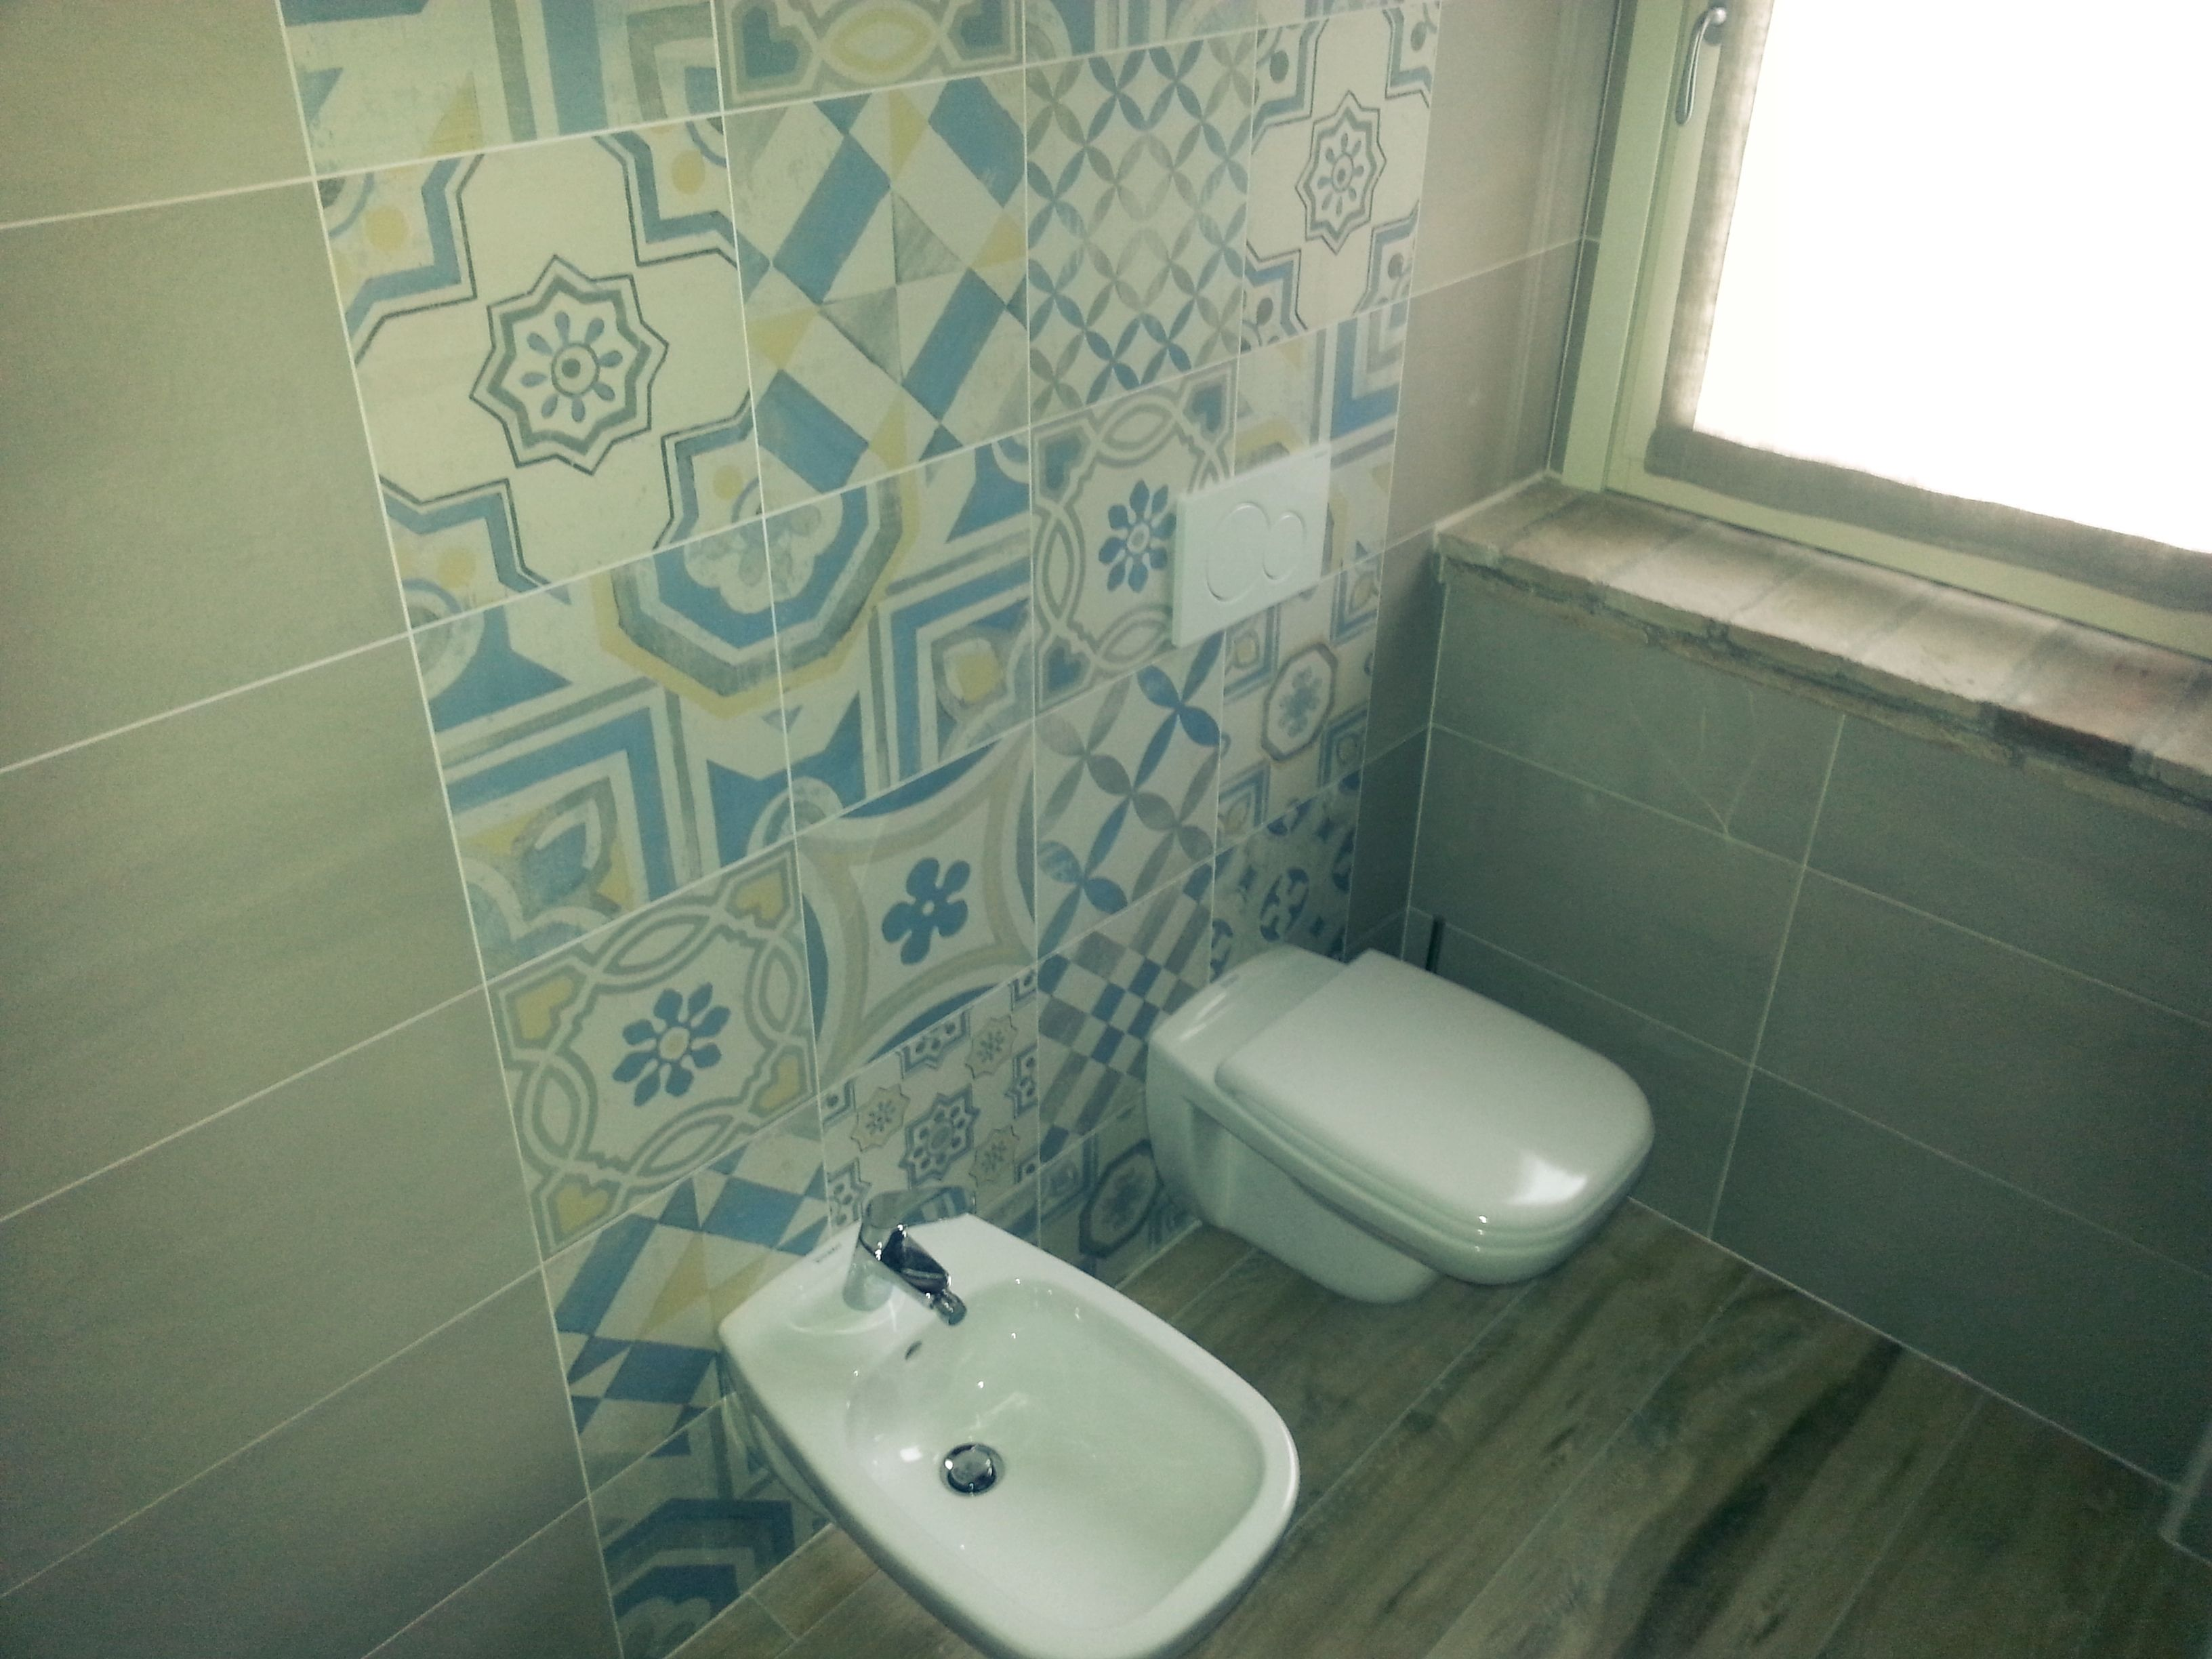 Rivestimento bagno con decori in cementine bathroom wall decorations in cementine - Bagno con cementine ...